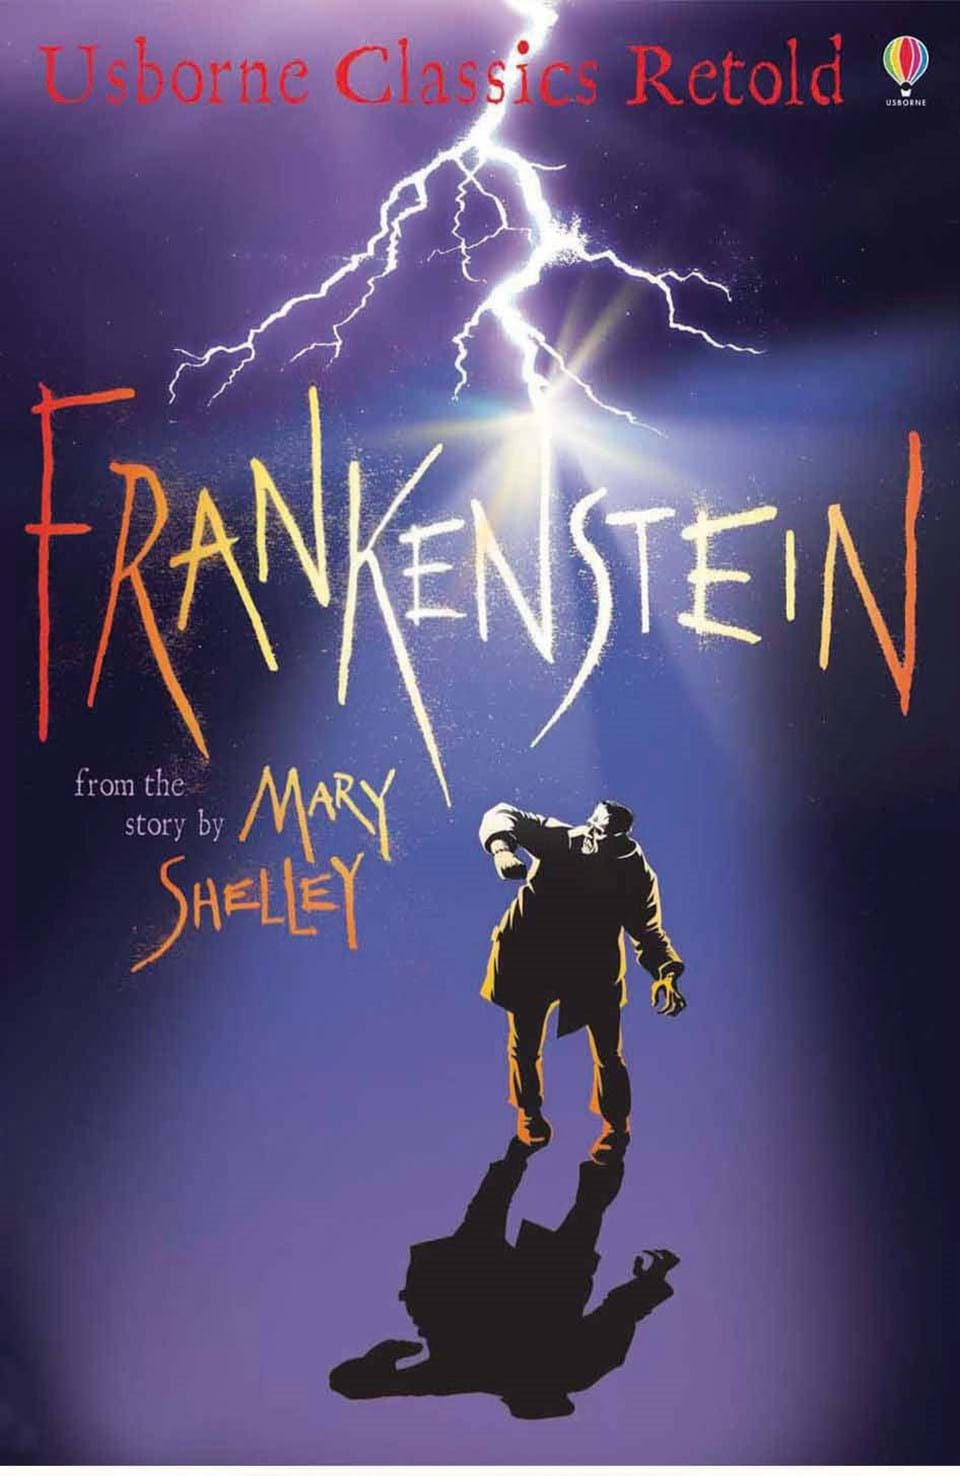 an analysis of the three phases of a child in frankenstein by mary shelley Then her miscarriage of percy shelly's child till on the mary shelley's novel frankenstein on topic frankenstein critical analysis evaluation.